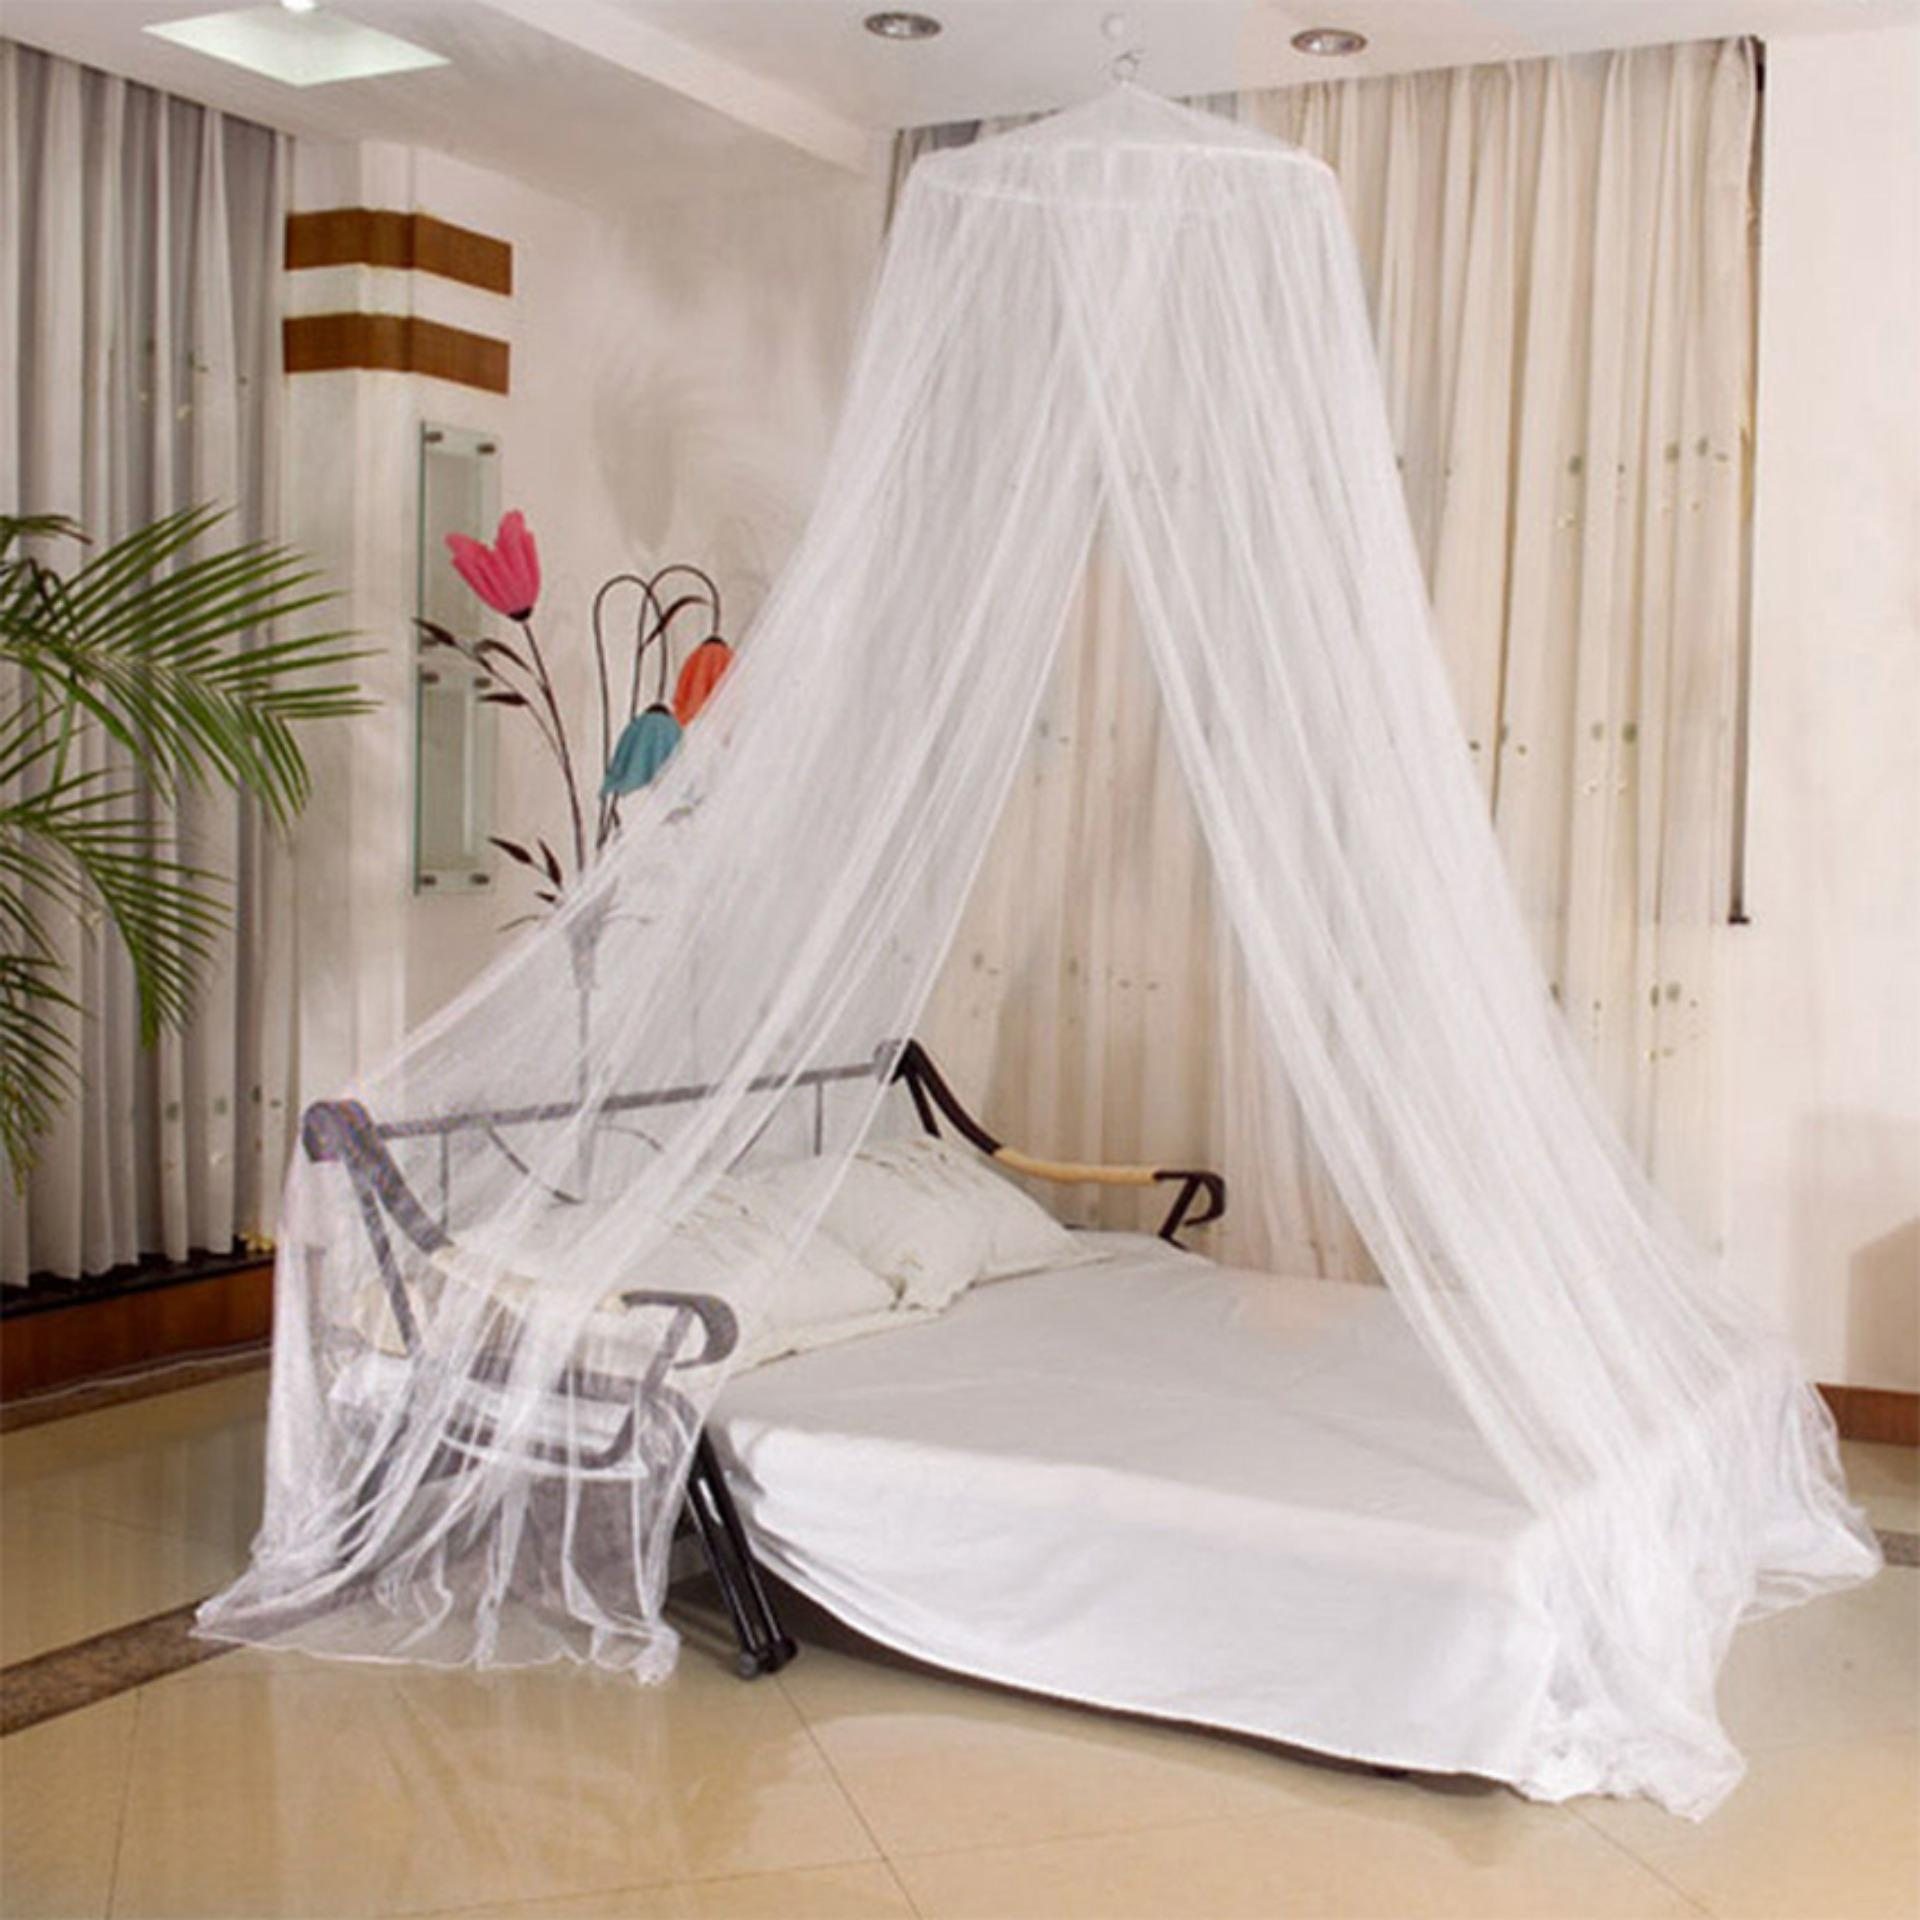 ... Rukia Mosquito Net Bed Canopy King/Queen Size (White) with AntiMosquito Pest Insect ... & Philippines | Rukia Mosquito Net Bed Canopy King/Queen Size (White ...